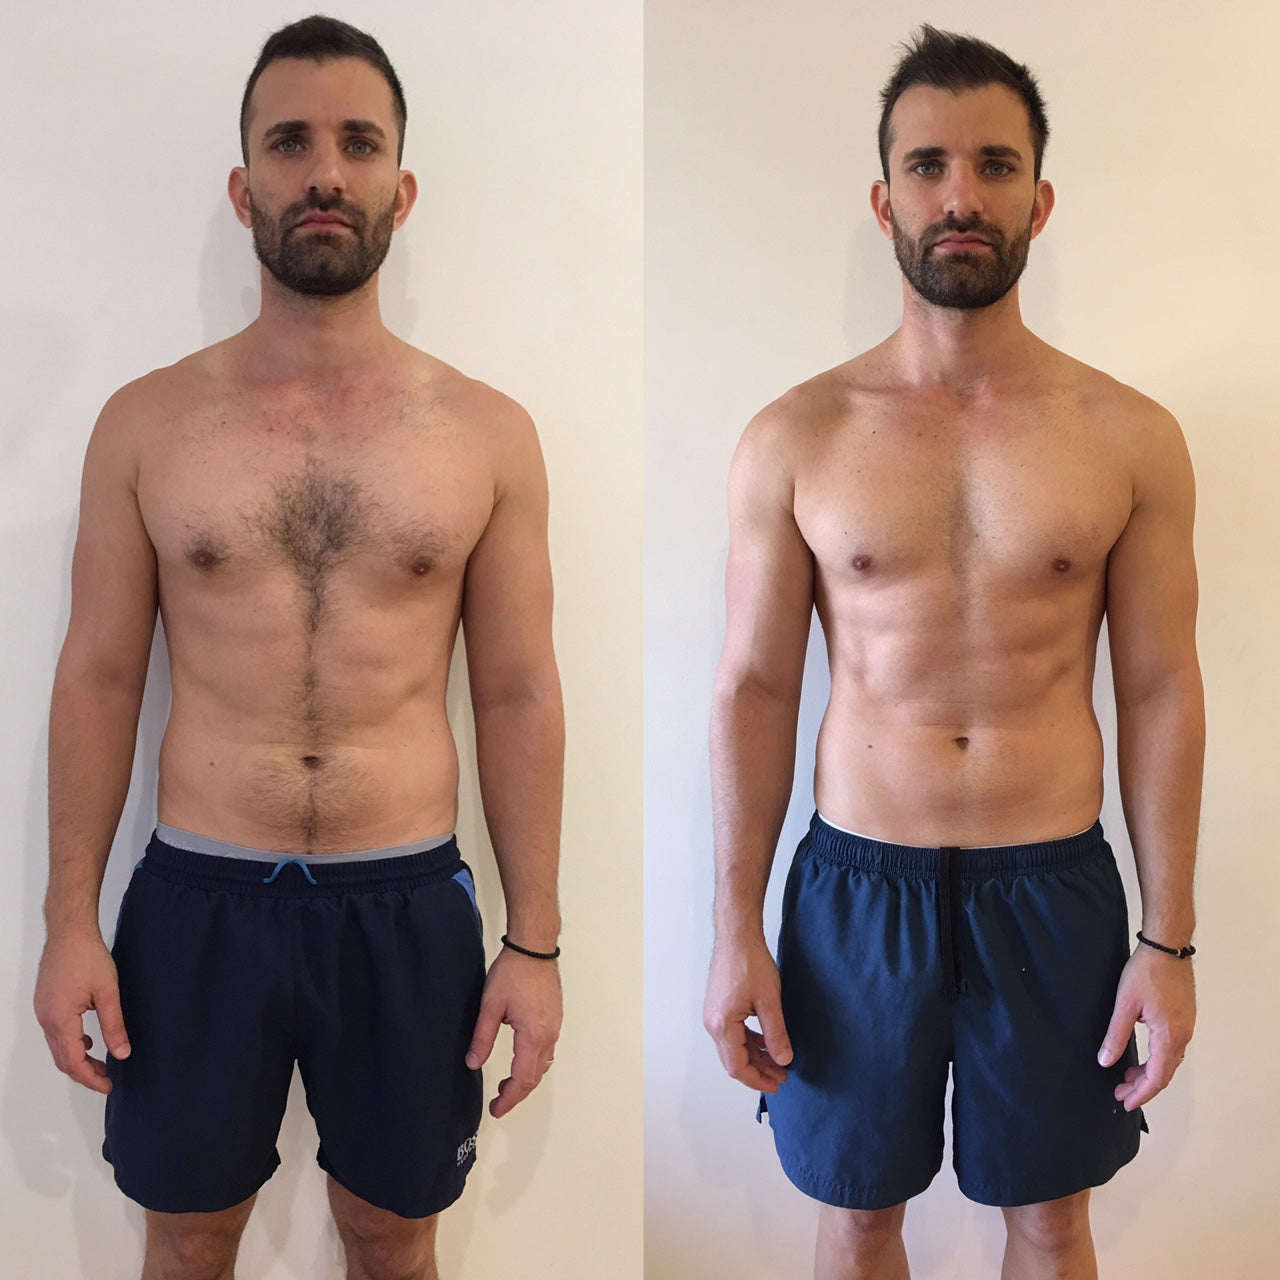 Mens-28-Day-guide-before-and-after